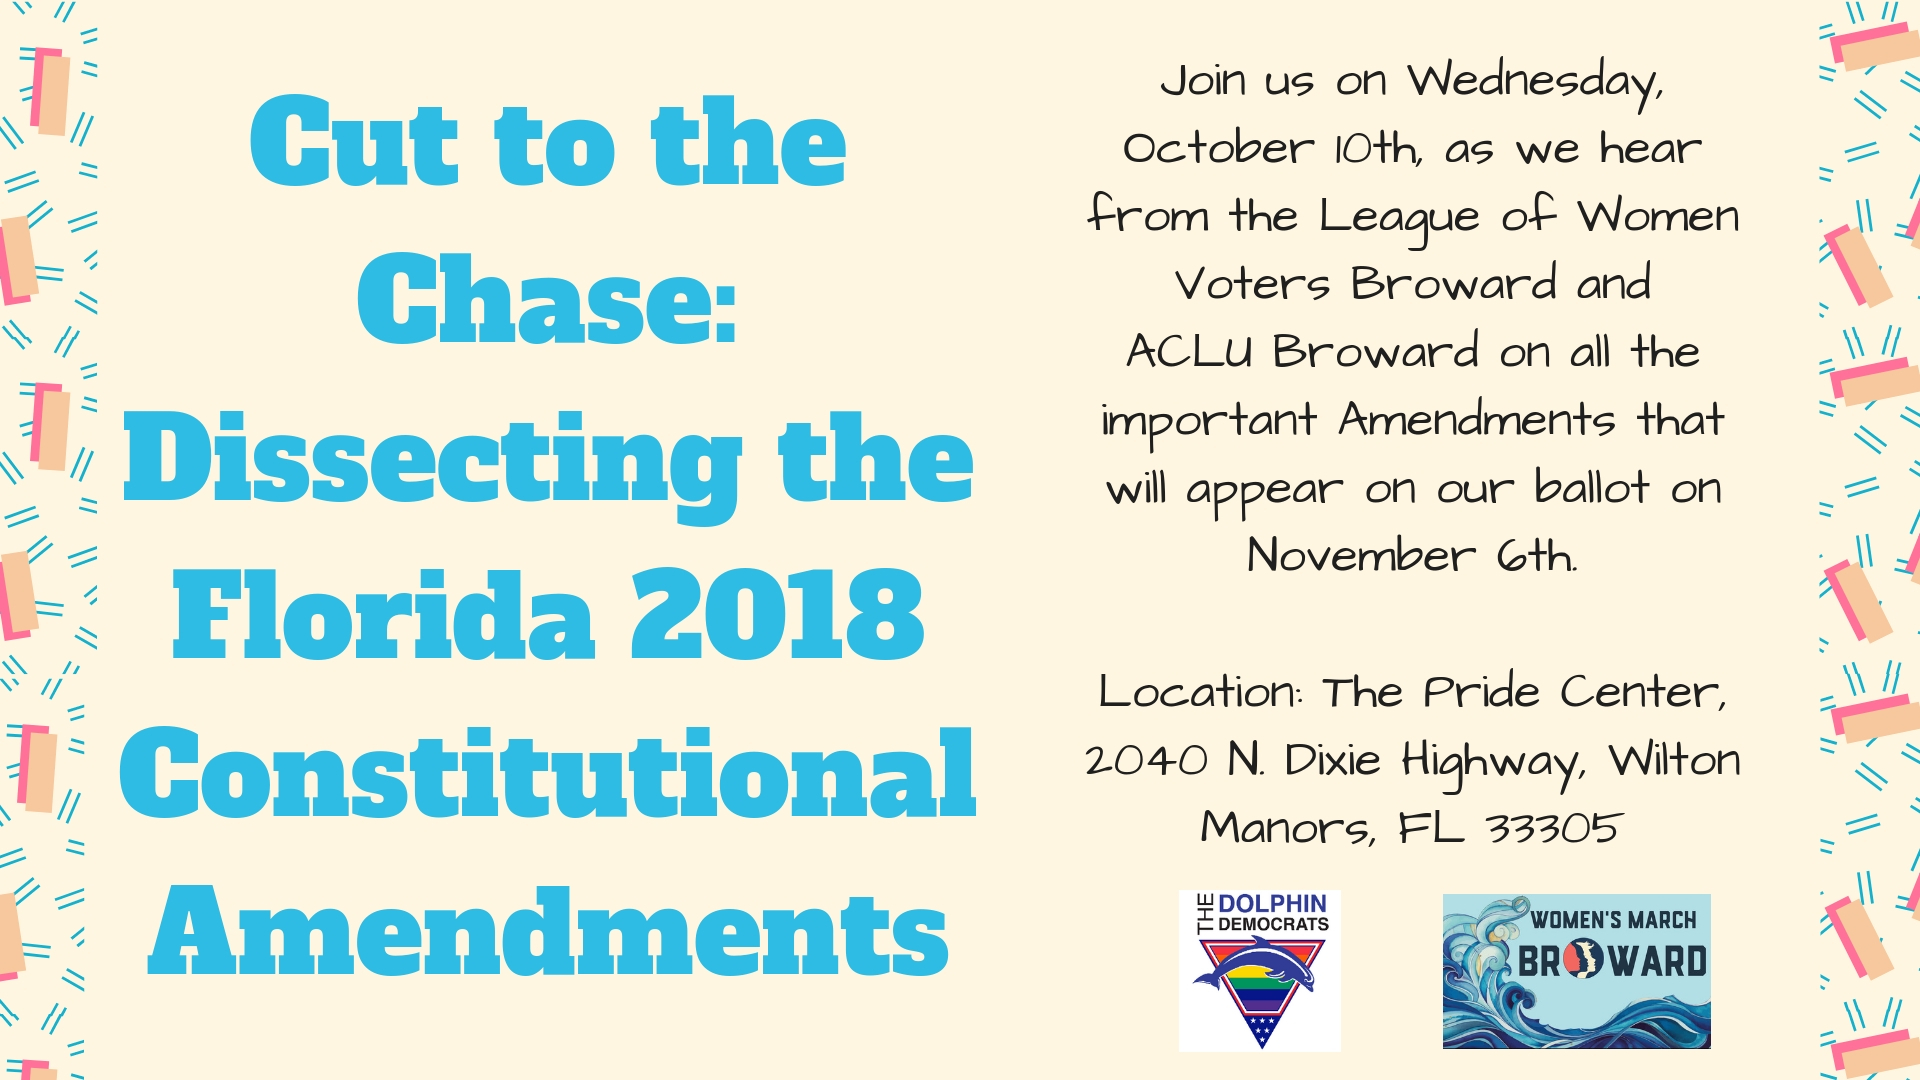 10-10-18: Cut to the Chase: Dissecting the 2018 State Amendments - Please join The Dolphin Democrats and Women's March Broward as we discuss the 2018 Florida Constitutional Amendments that will appear on the November 6th ballot.We will have presenters from the League of Women Voters Broward and ACLU Broward to discuss each ballot item. There are currently 7 items on the ballot that were proposed by the Constitutional Revision Commission, which meets every 20 years to propose changes to the state constitution. These items might be confusing to the average voter due to the odd combination of each item, such as Prohibiting Offshore Drilling AND Banning Vaping in the Work Place or the Rights of Victims AND Retirement Age for Judges. The other 5 items have been placed on the ballot by the Florida Legislature and by a few organizations via petition. Please RSVP! We look forward to seeing you on the 10th!